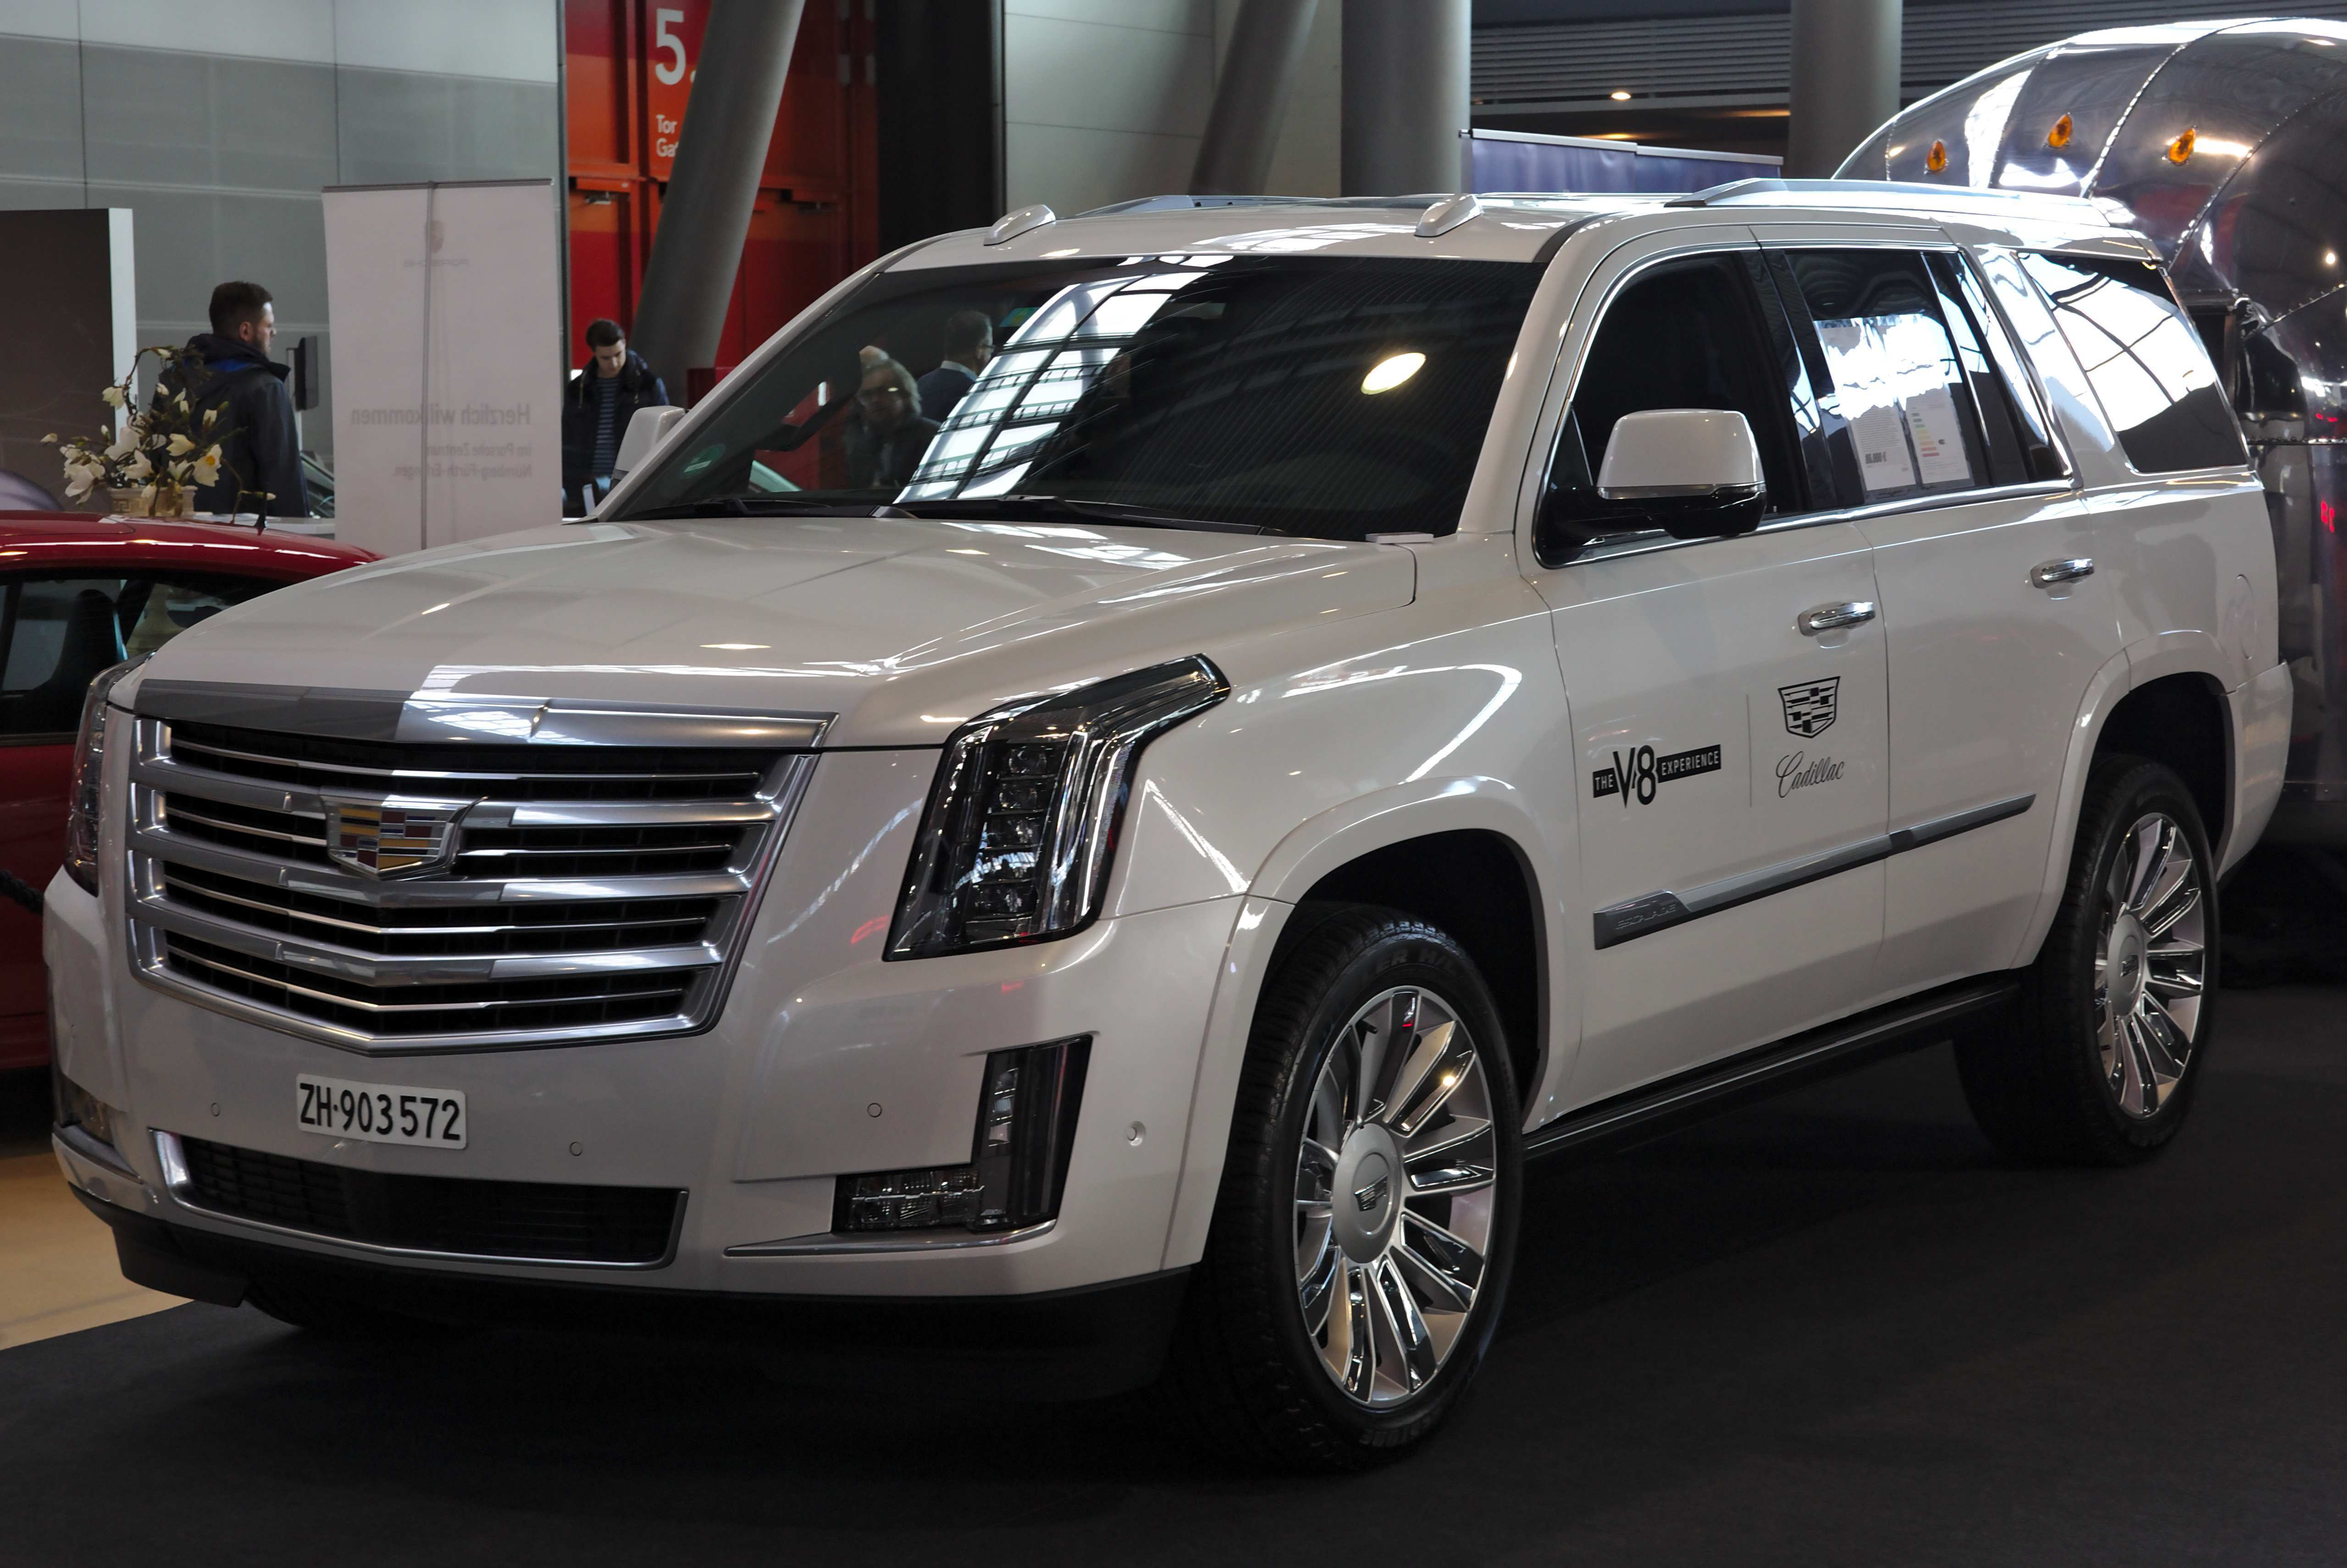 35 Gallery of New 2019 Cadillac Escalade Build New Review First Drive by New 2019 Cadillac Escalade Build New Review